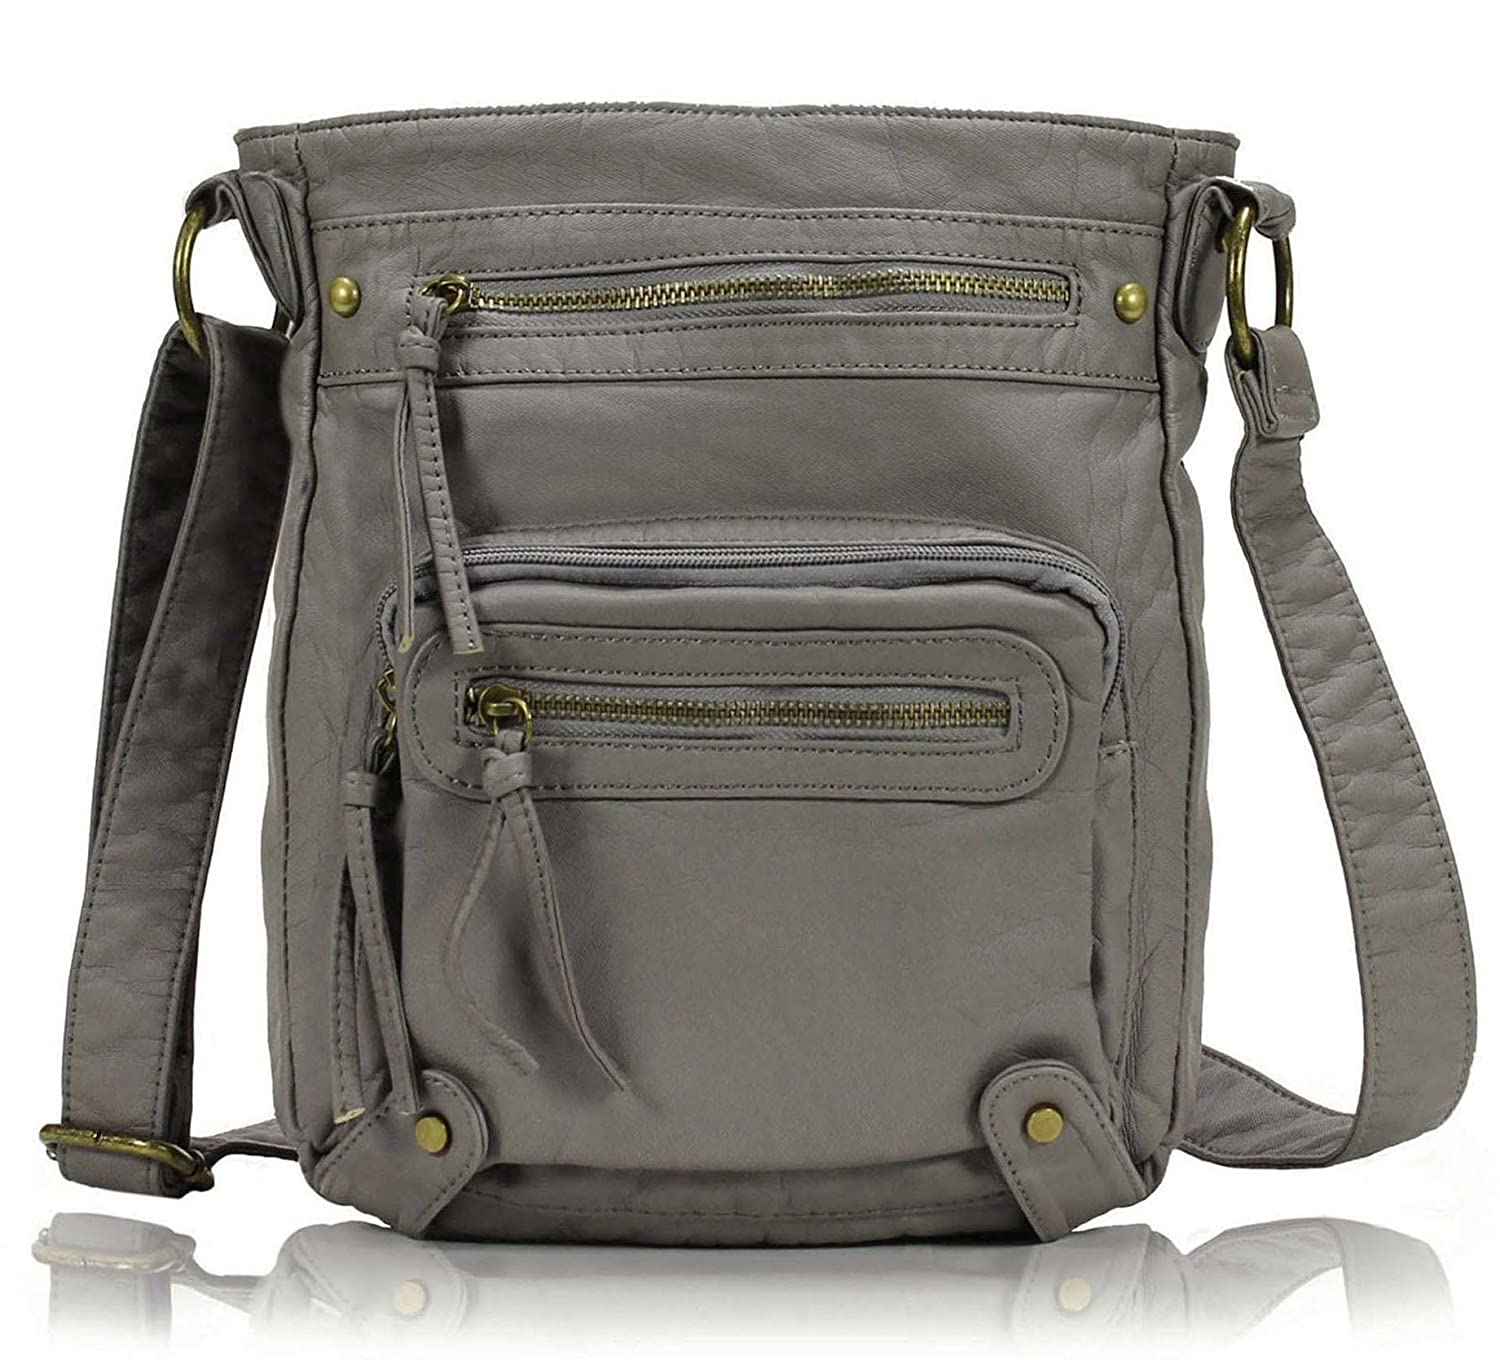 f1a2c892bdf6 Scarleton Washed Multi Pocket Crossbody Bag H169324 - Ash Grey  Handbags   Amazon.com